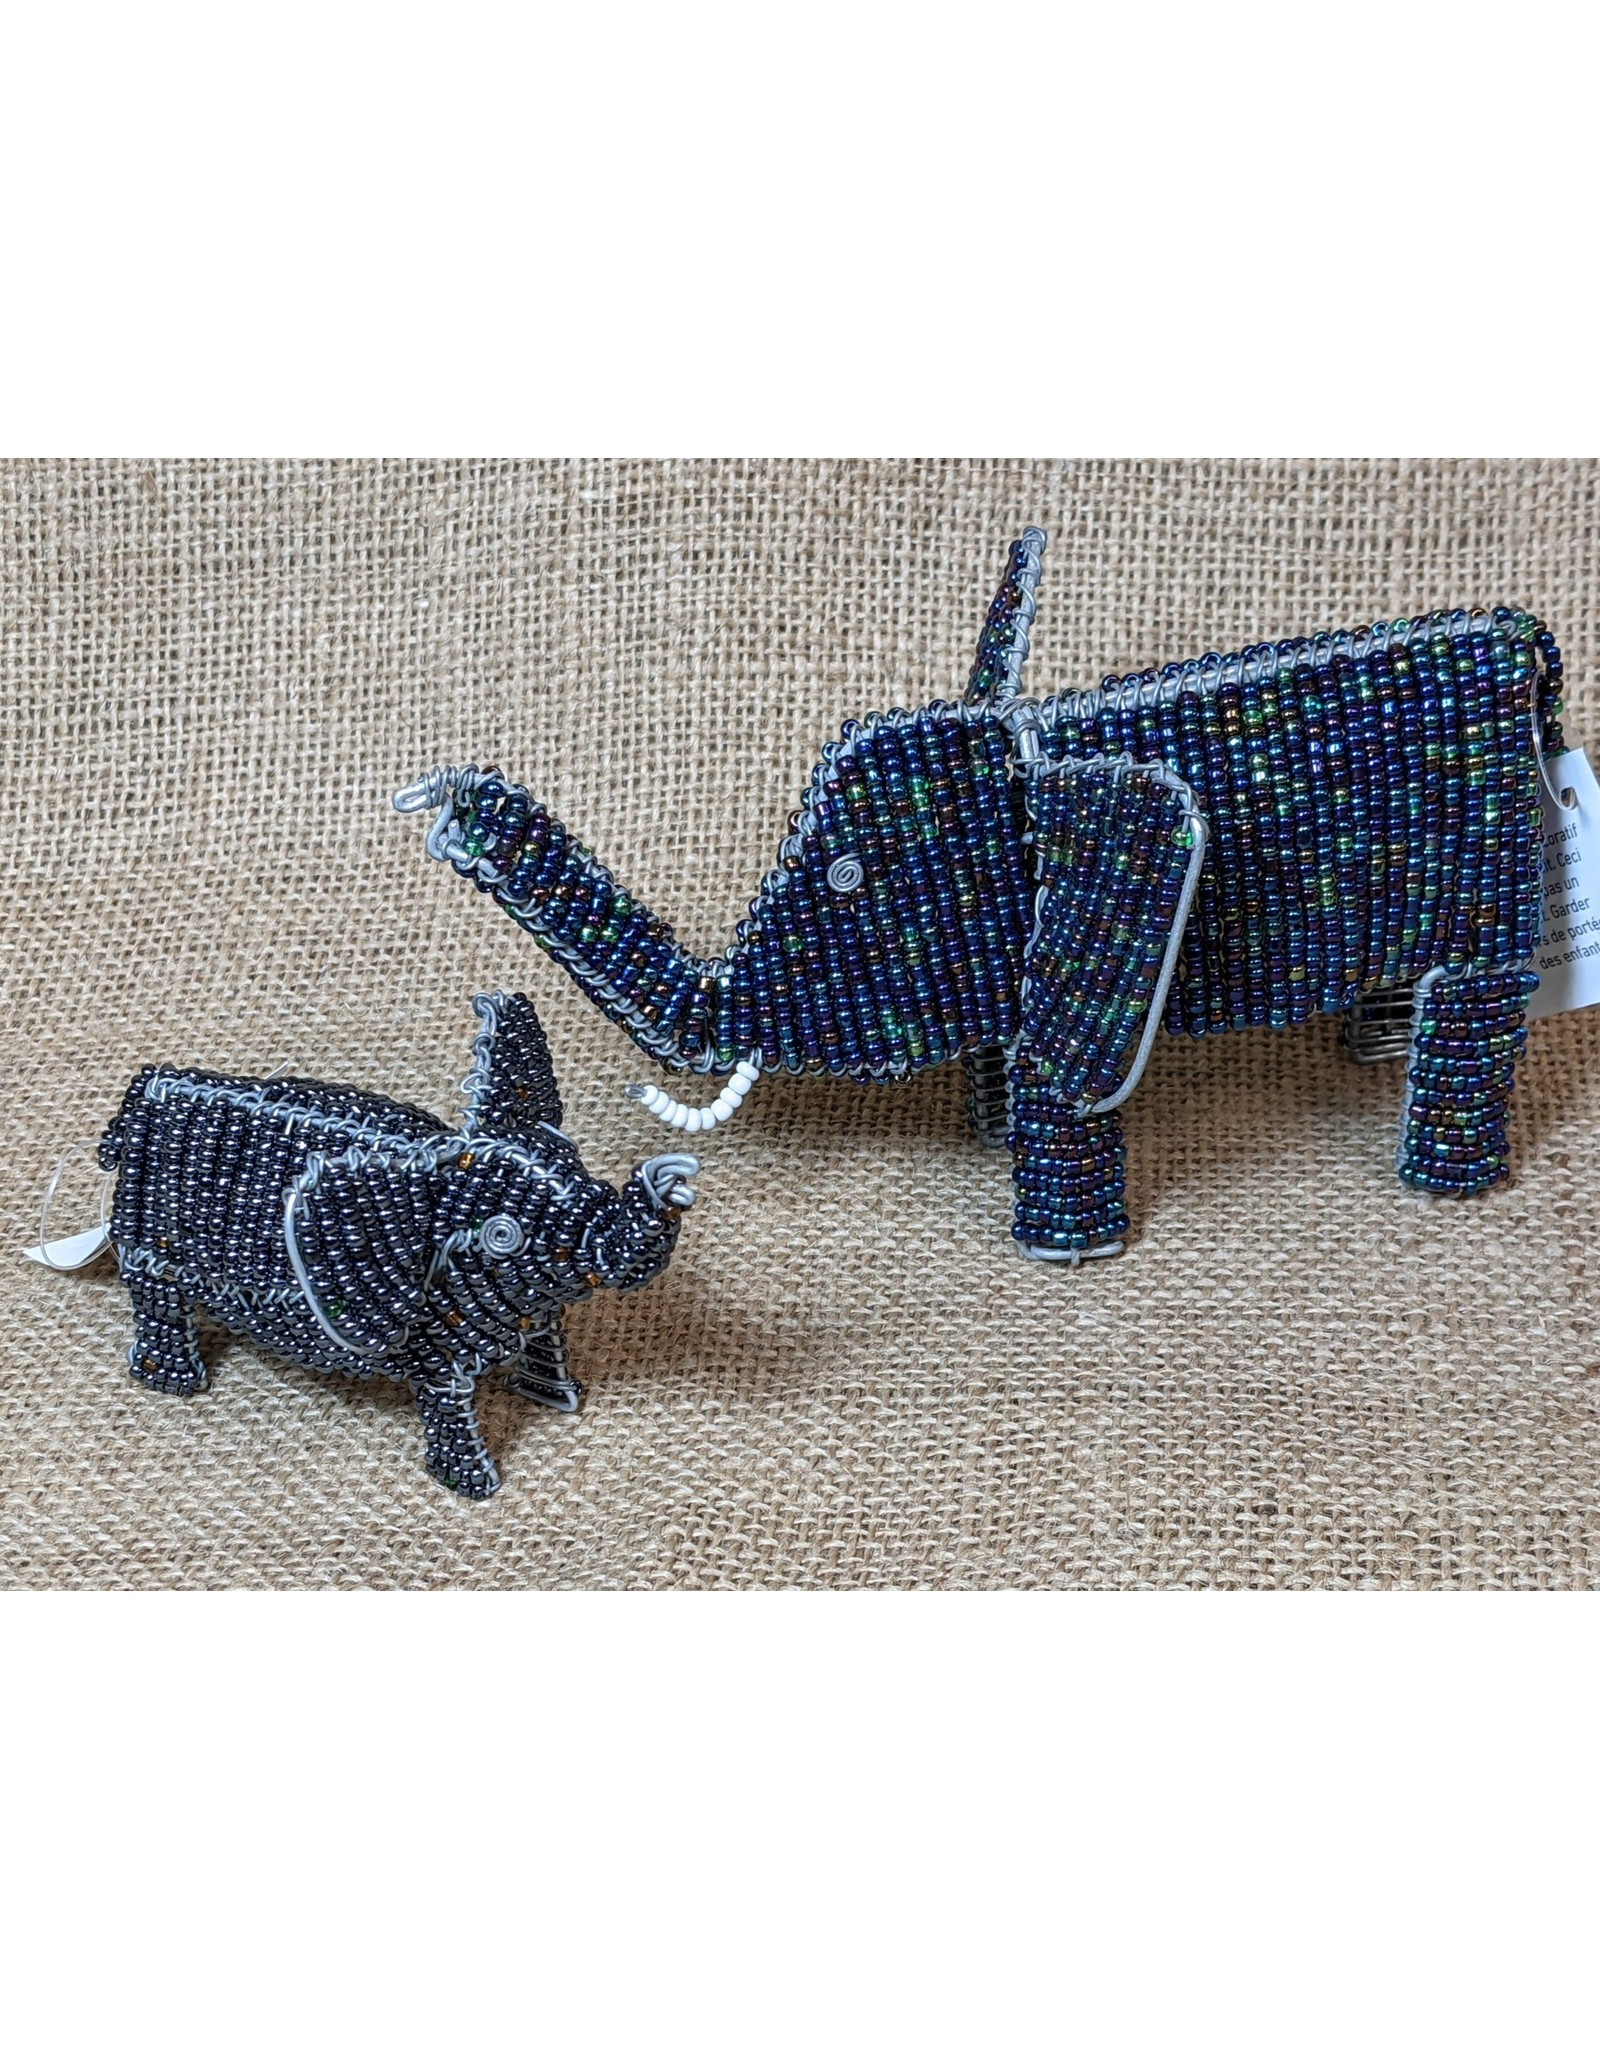 Ten Thousand Villages CLEARANCE Beaded Elephant (small), Kenya